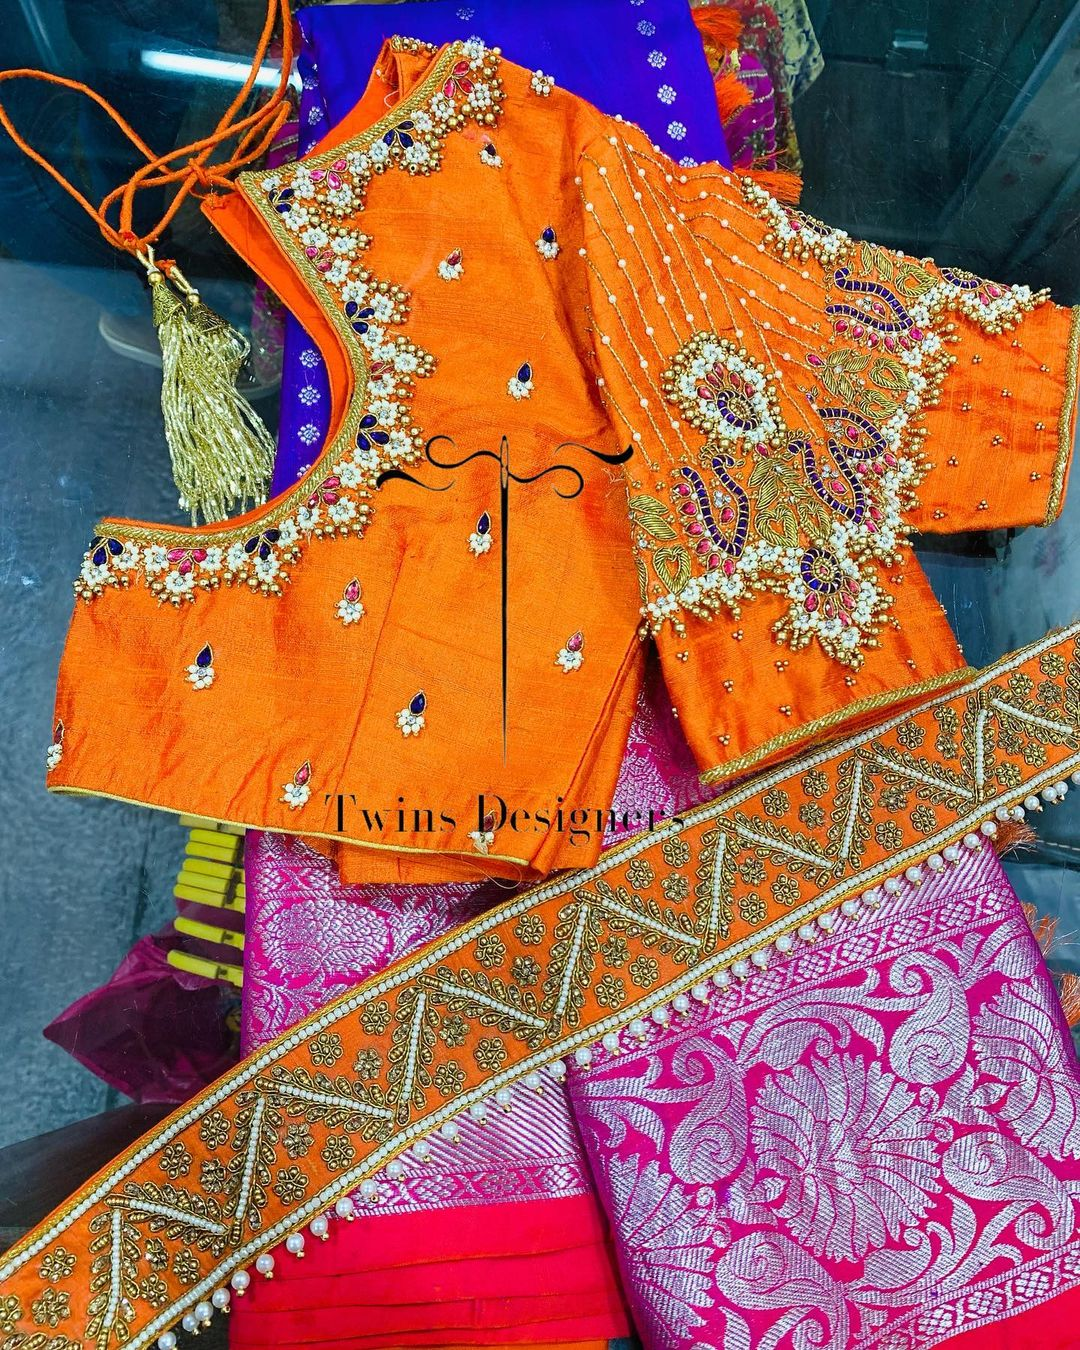 Kanchipattu saree paired with contrast maggam work blouse. 2021-08-03